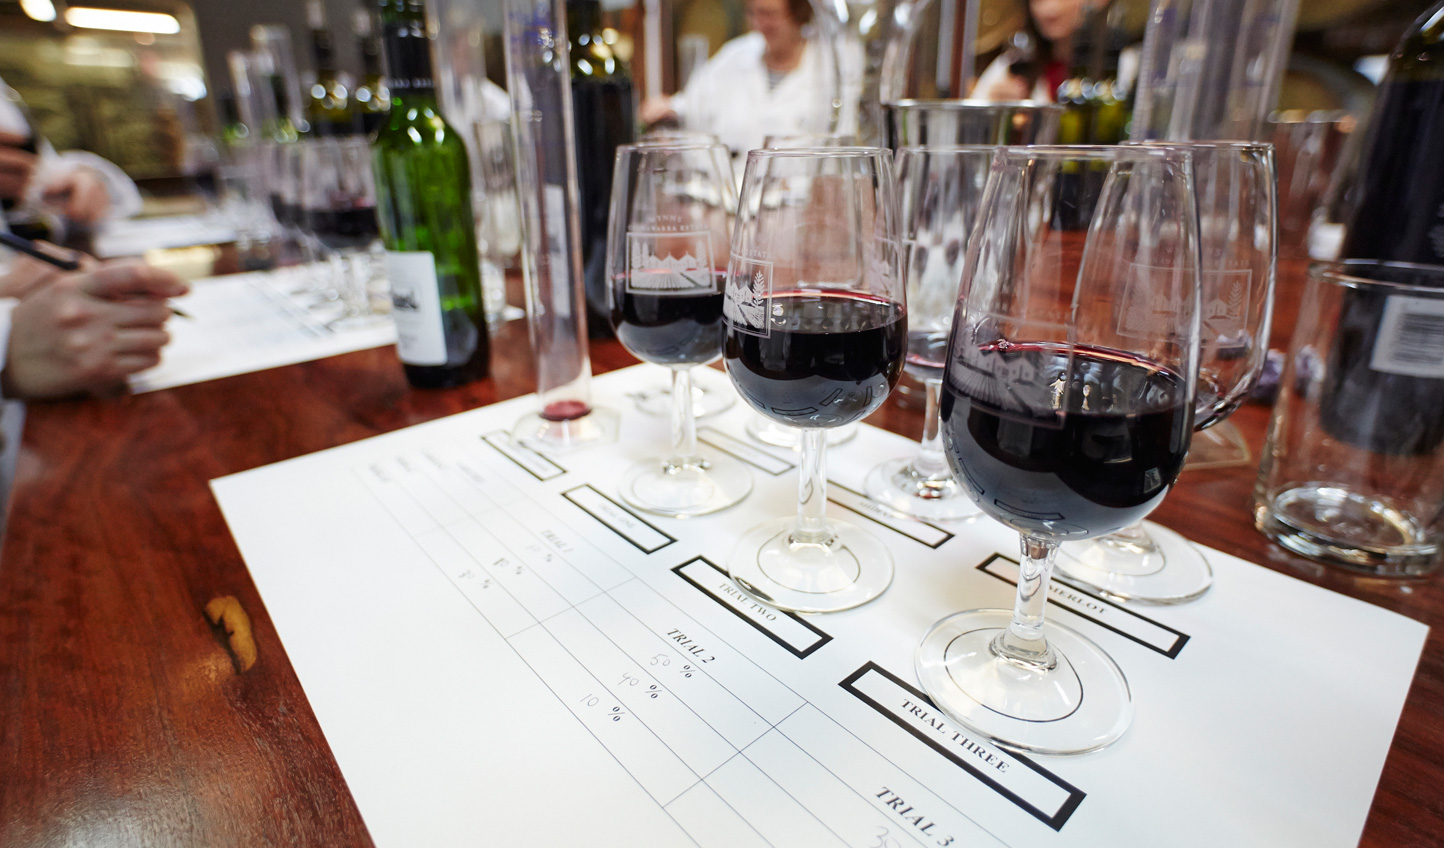 Compare notes on your wine tasting at Coonawarra Estate